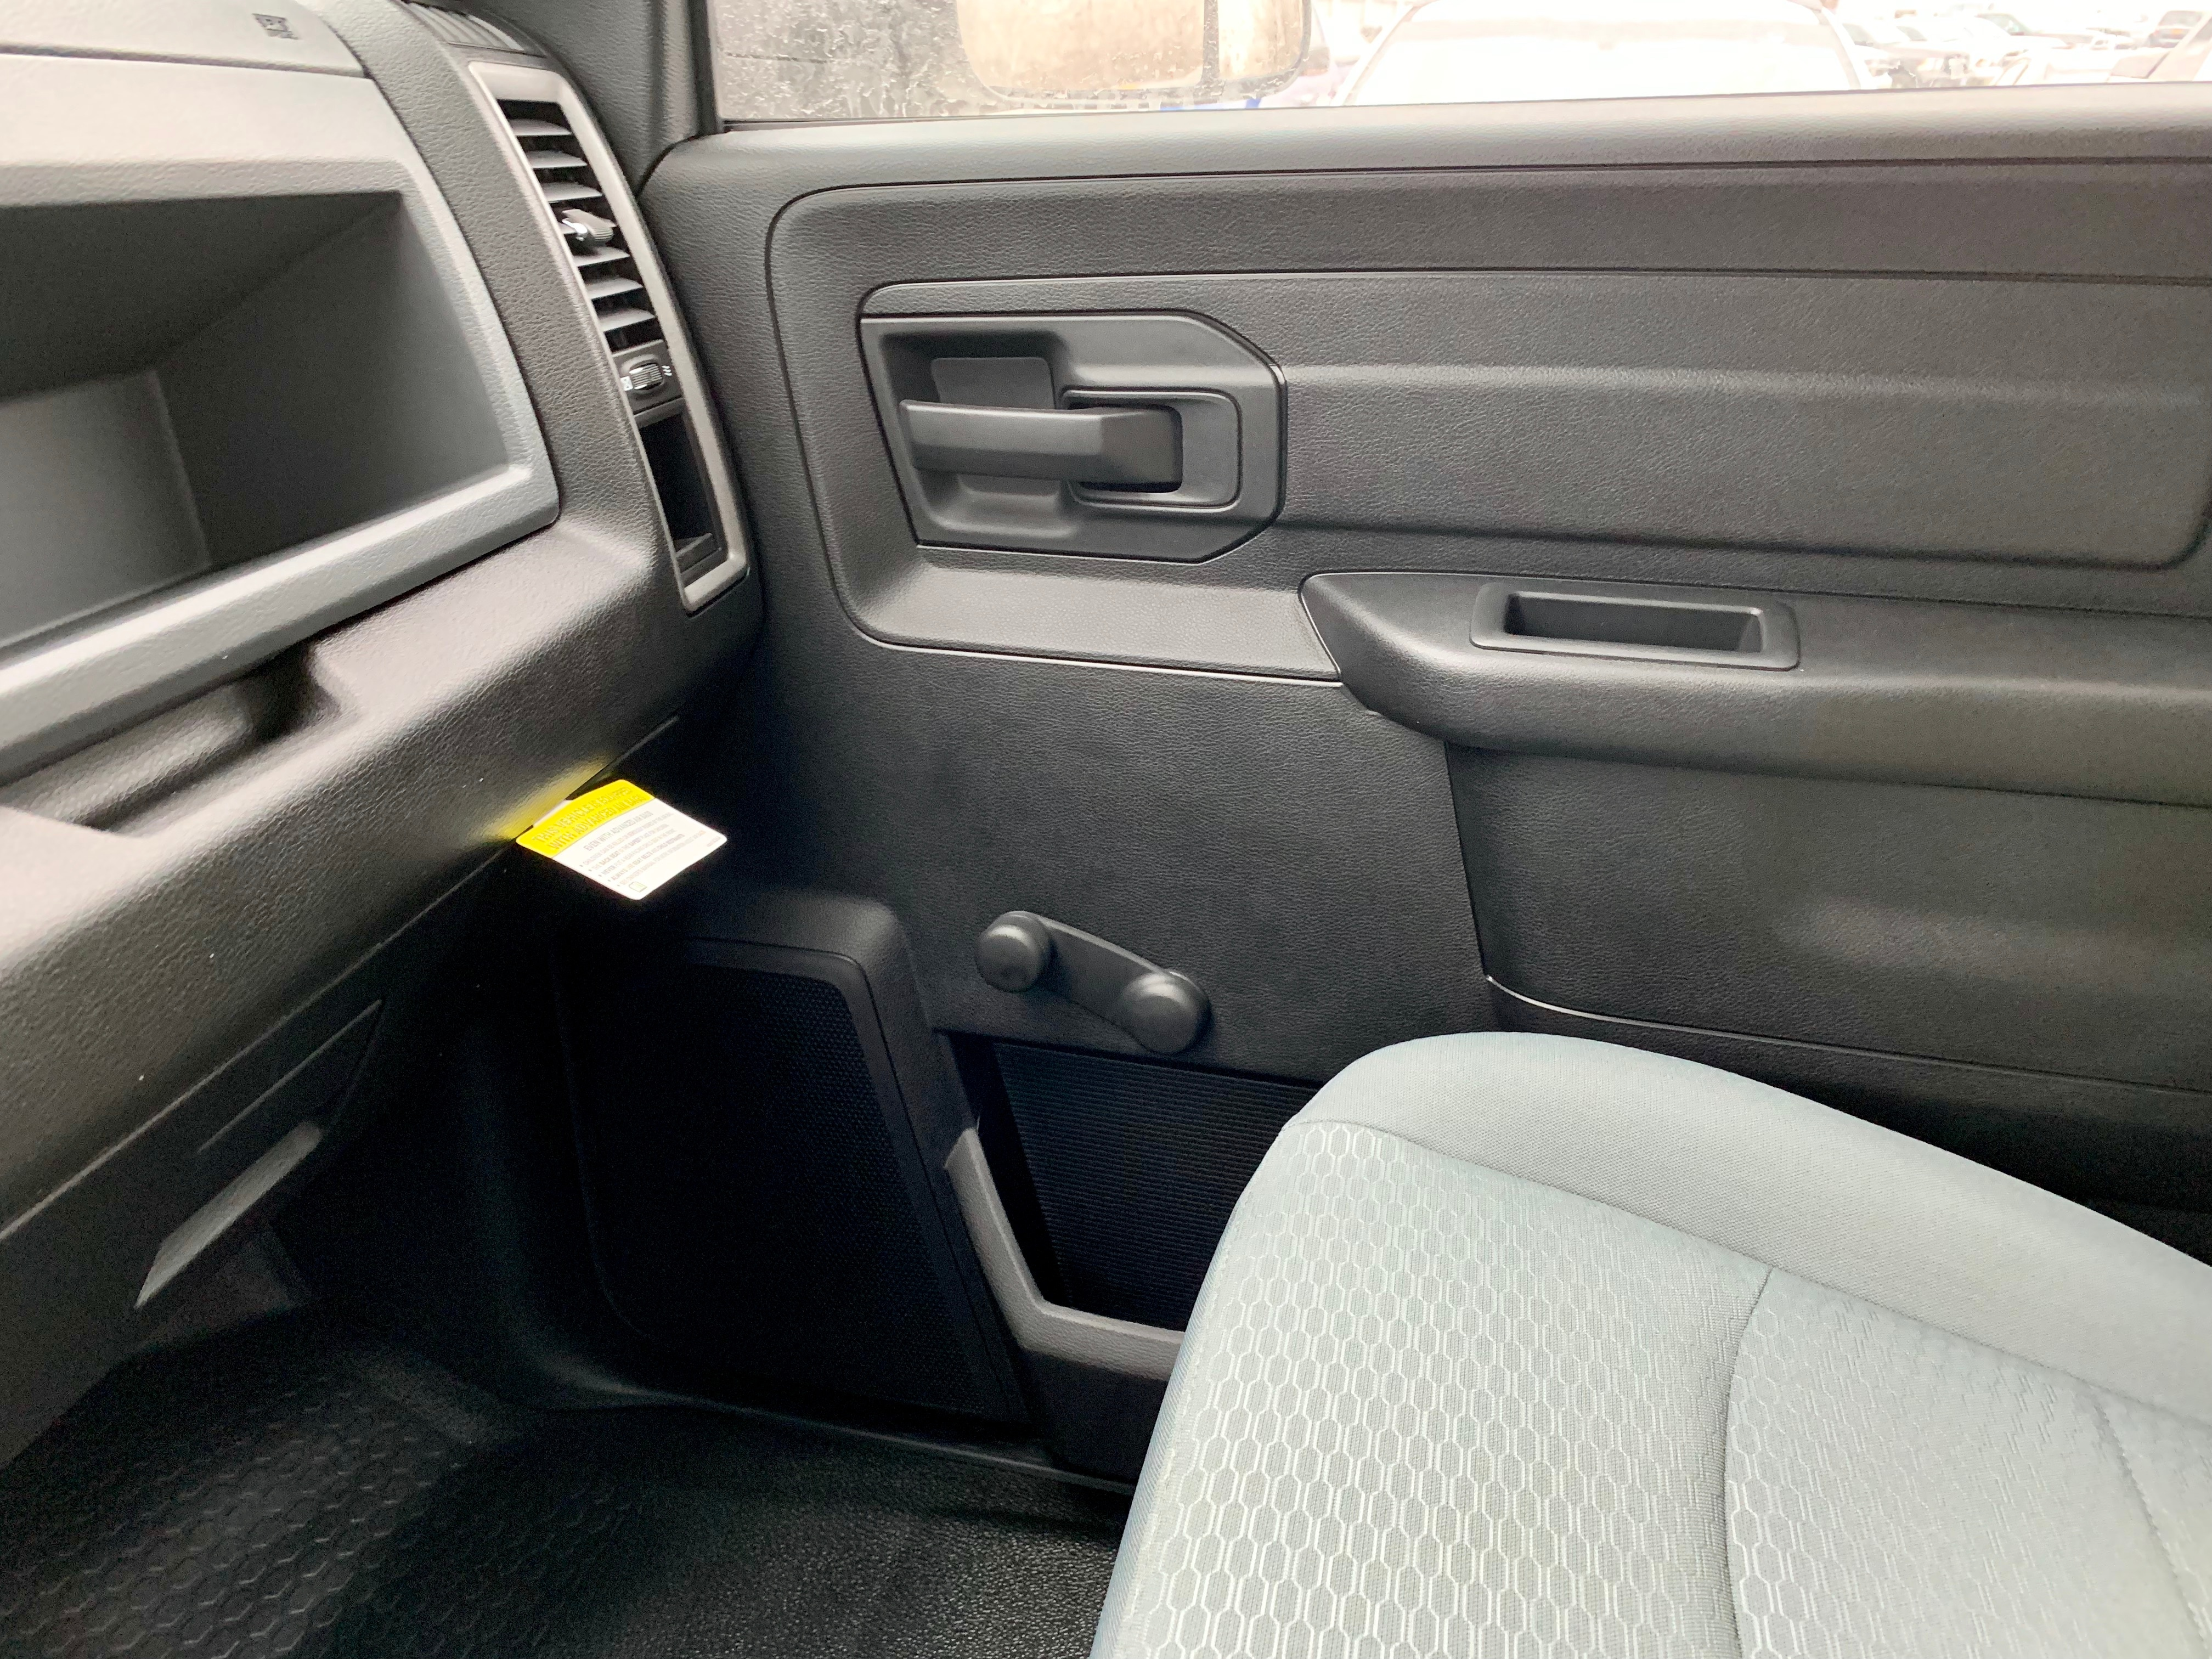 2019 Ram 1500 Regular Cab 4x4,  Pickup #T1989 - photo 13